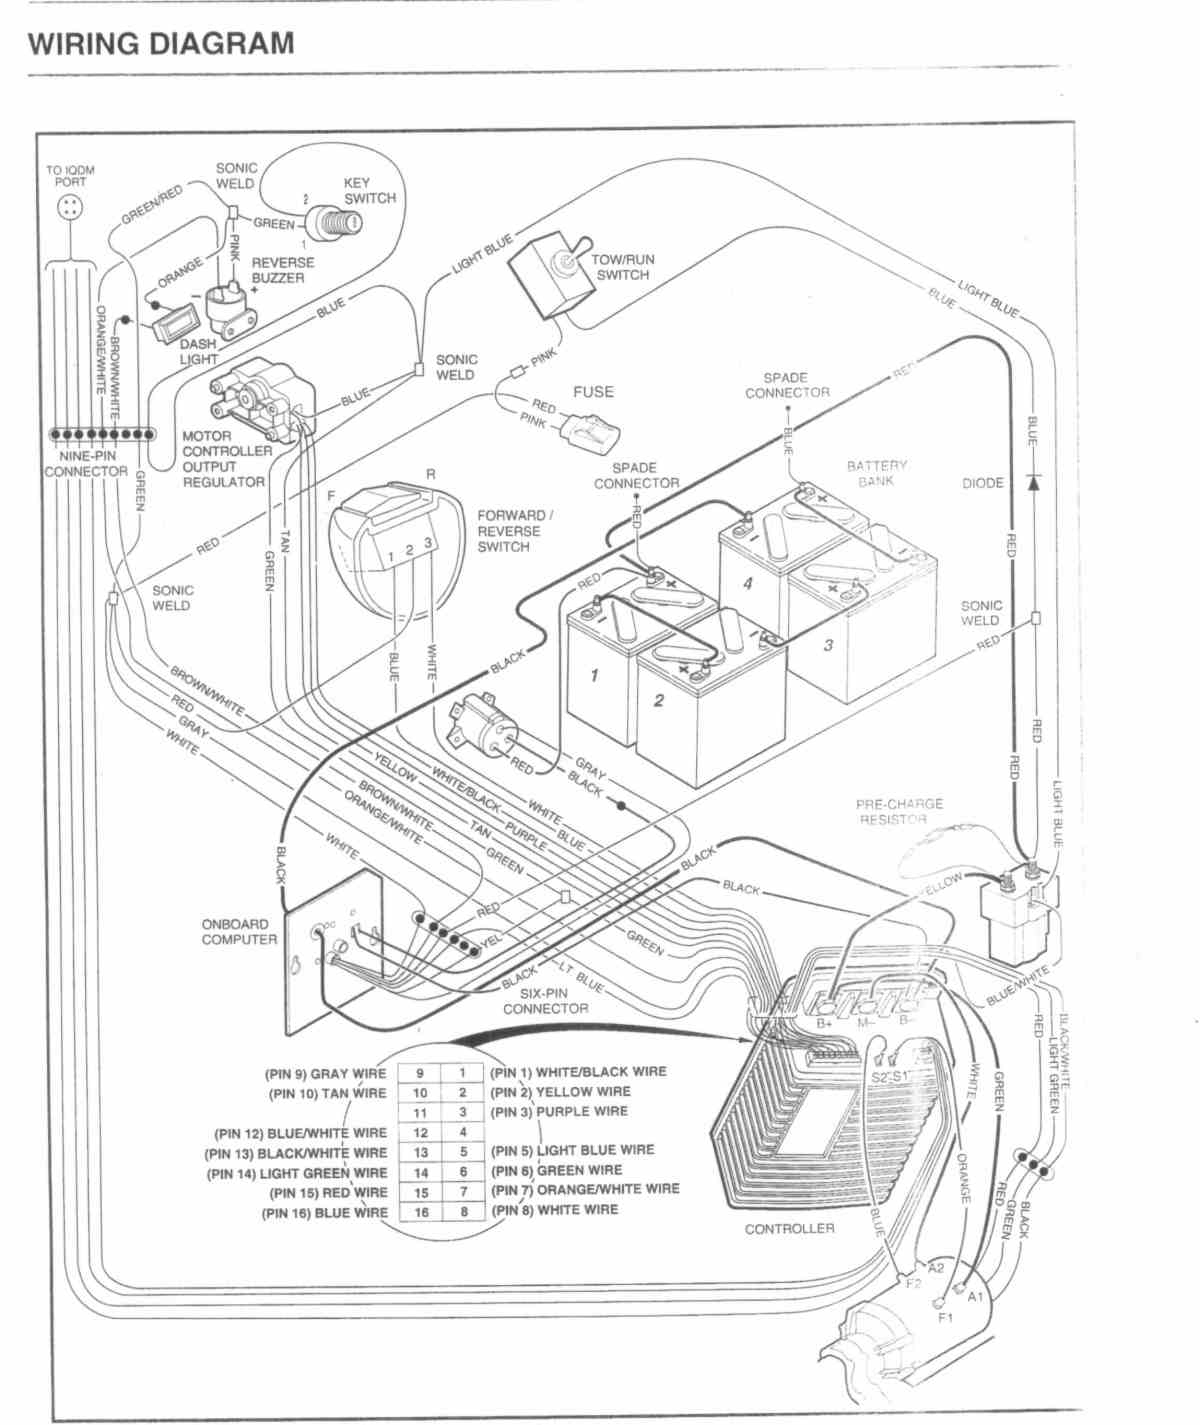 36 Volt Club Car Wiring Diagram Precedent | Manual E-Books - 2008 Club Car Precedent Wiring Diagram